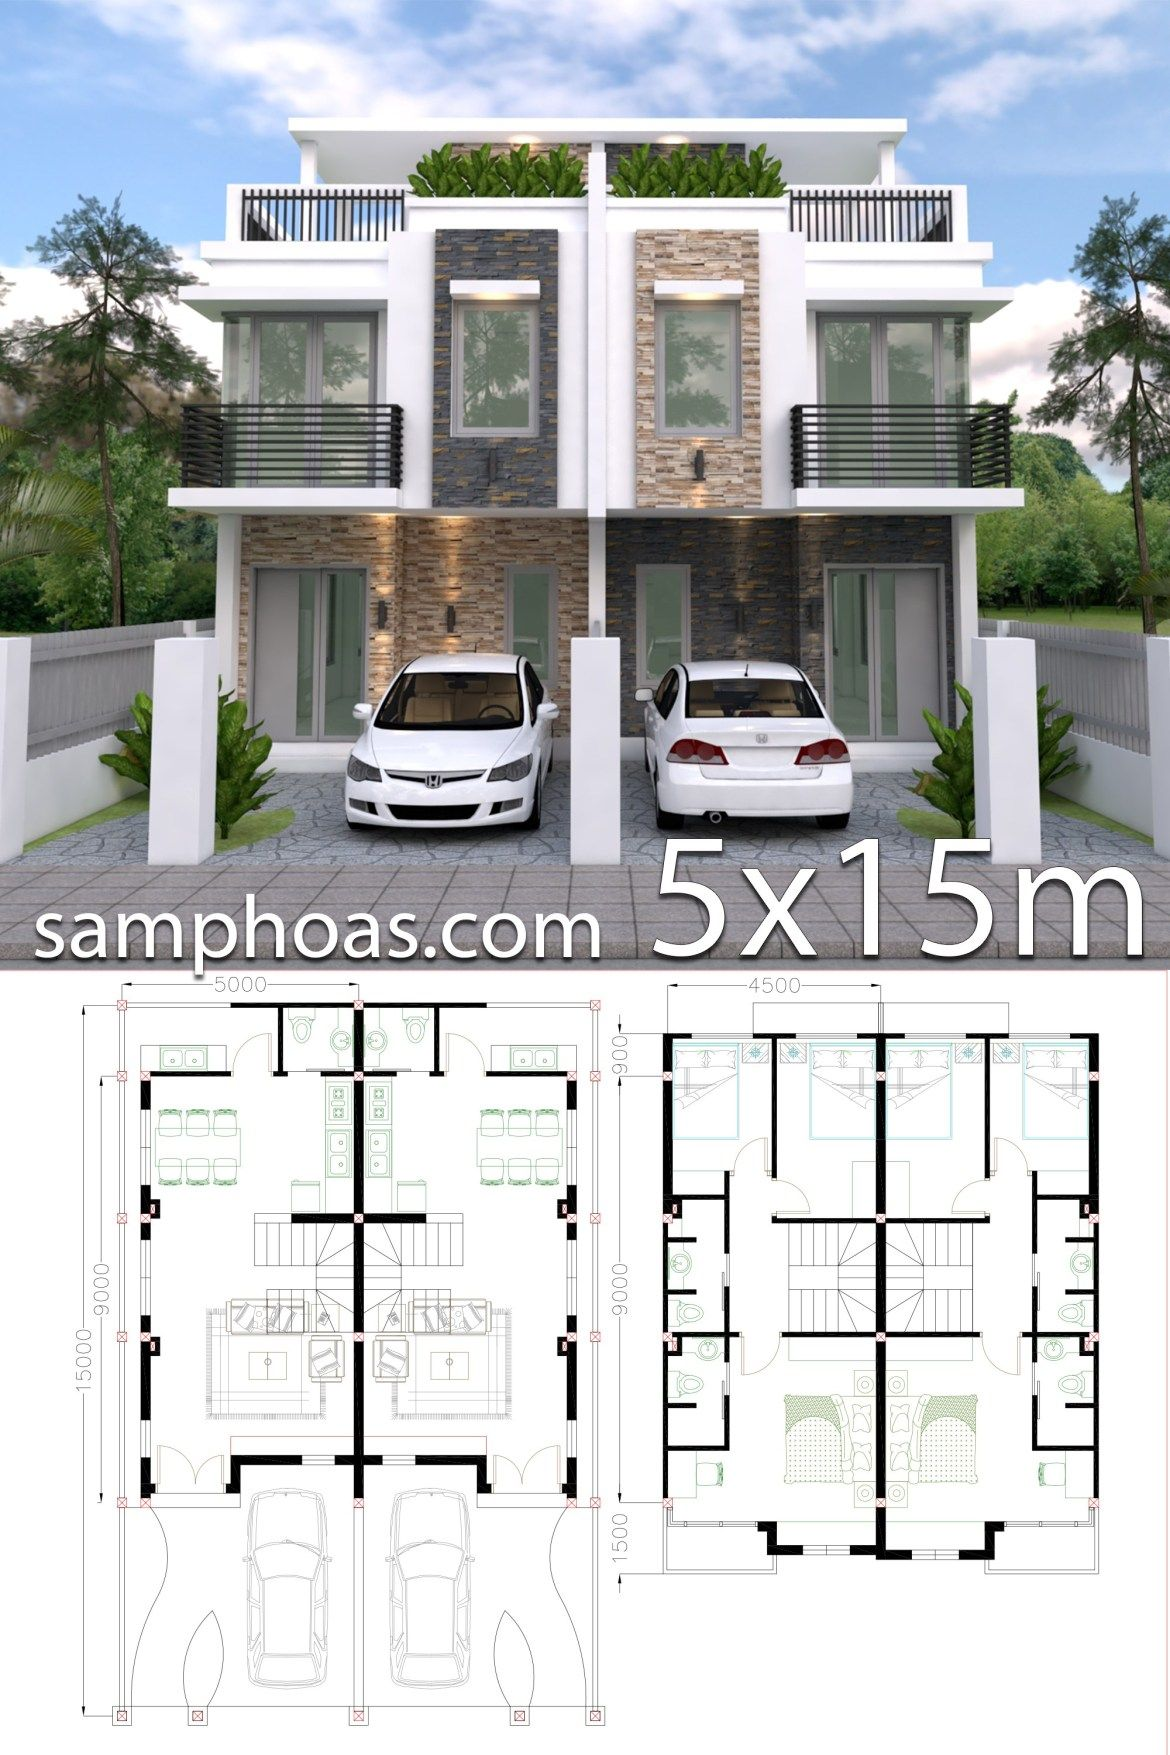 Home Design Plan 5x15m Duplex House With 3 Bedrooms Front Samphoas Plansearch Narrow House Plans House Layout Plans Duplex House Design